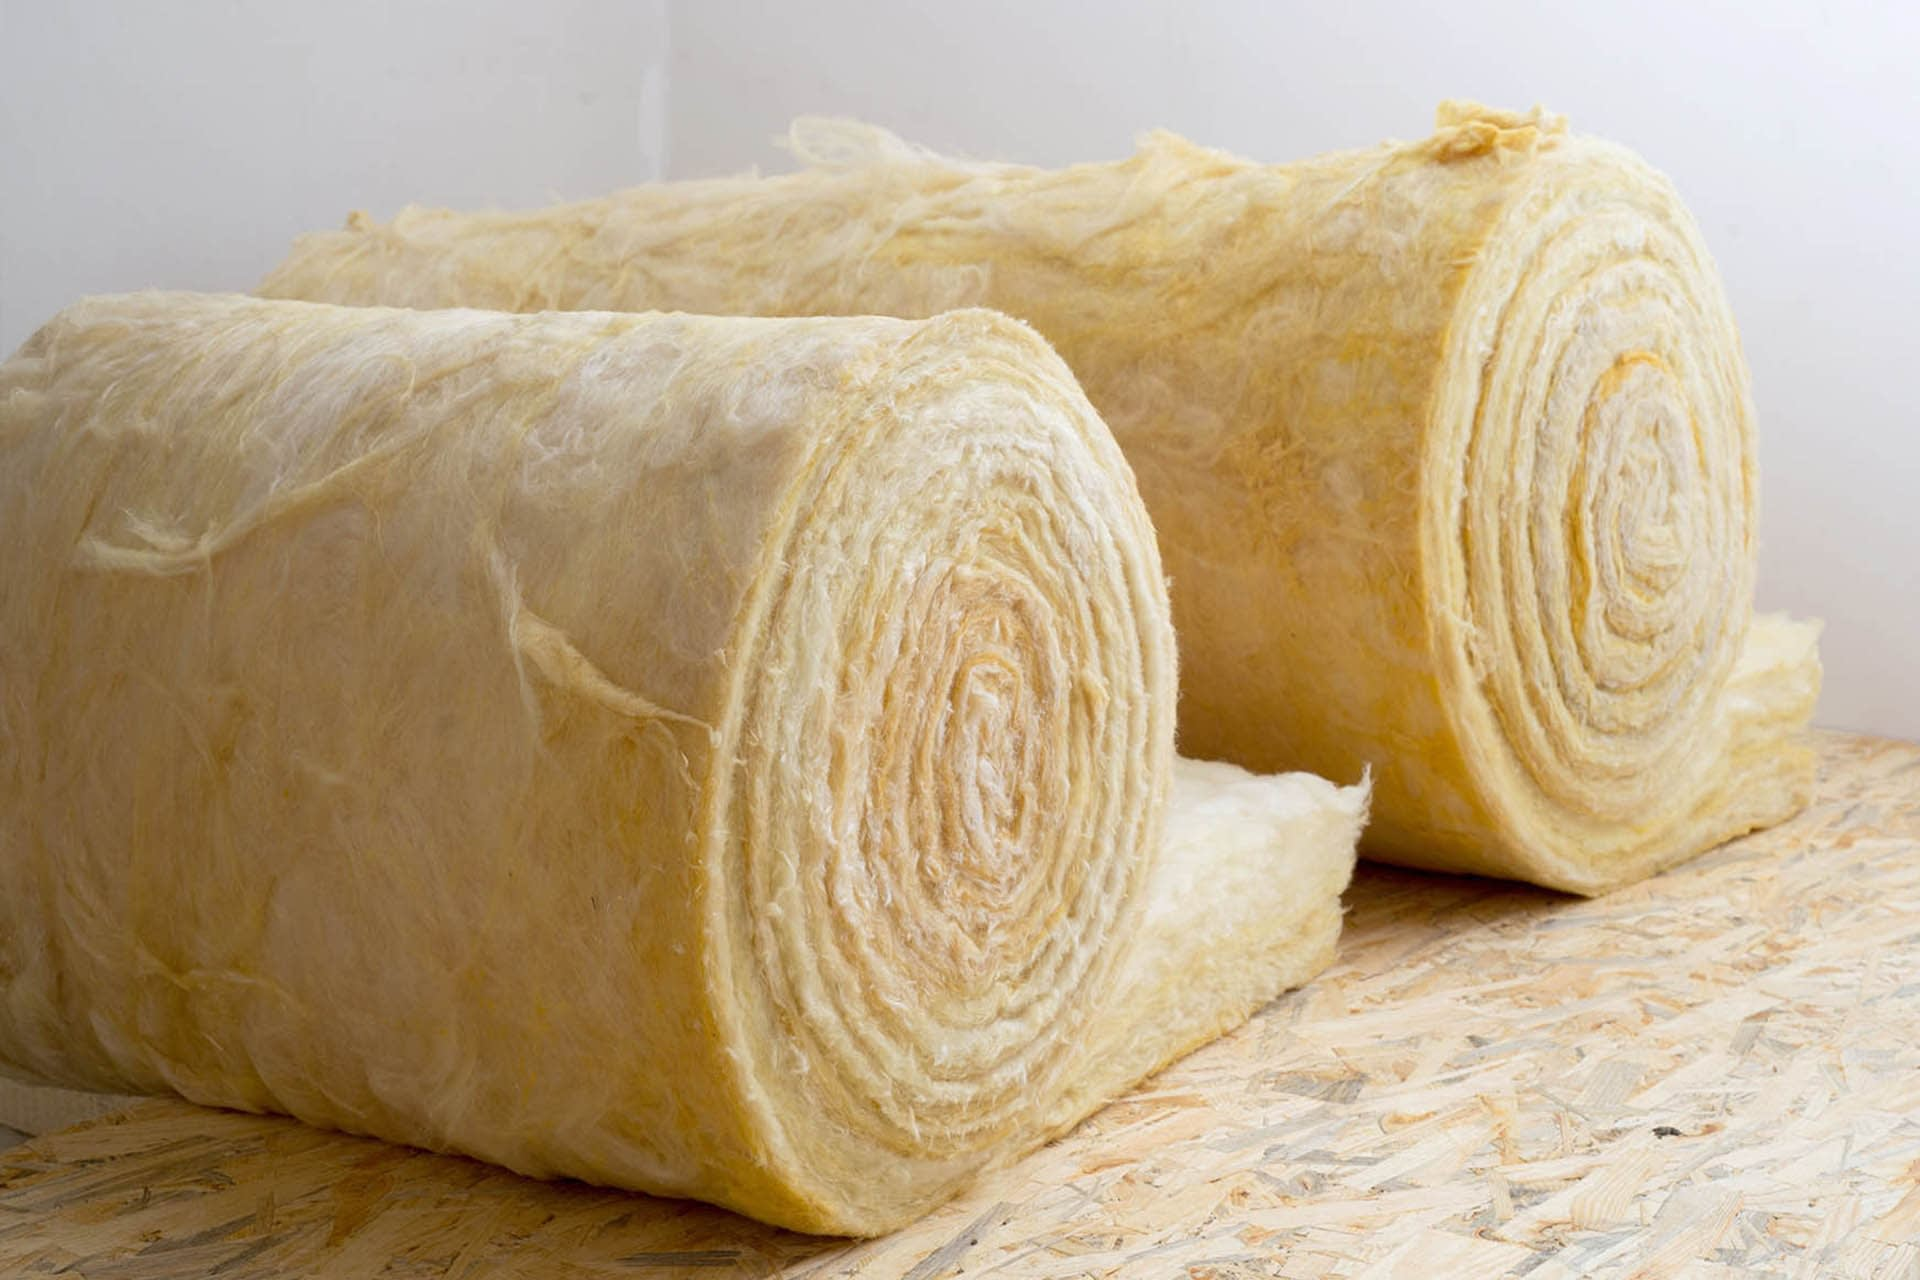 thermal-insulation-wool-rolls-on-chipboard-building-materials